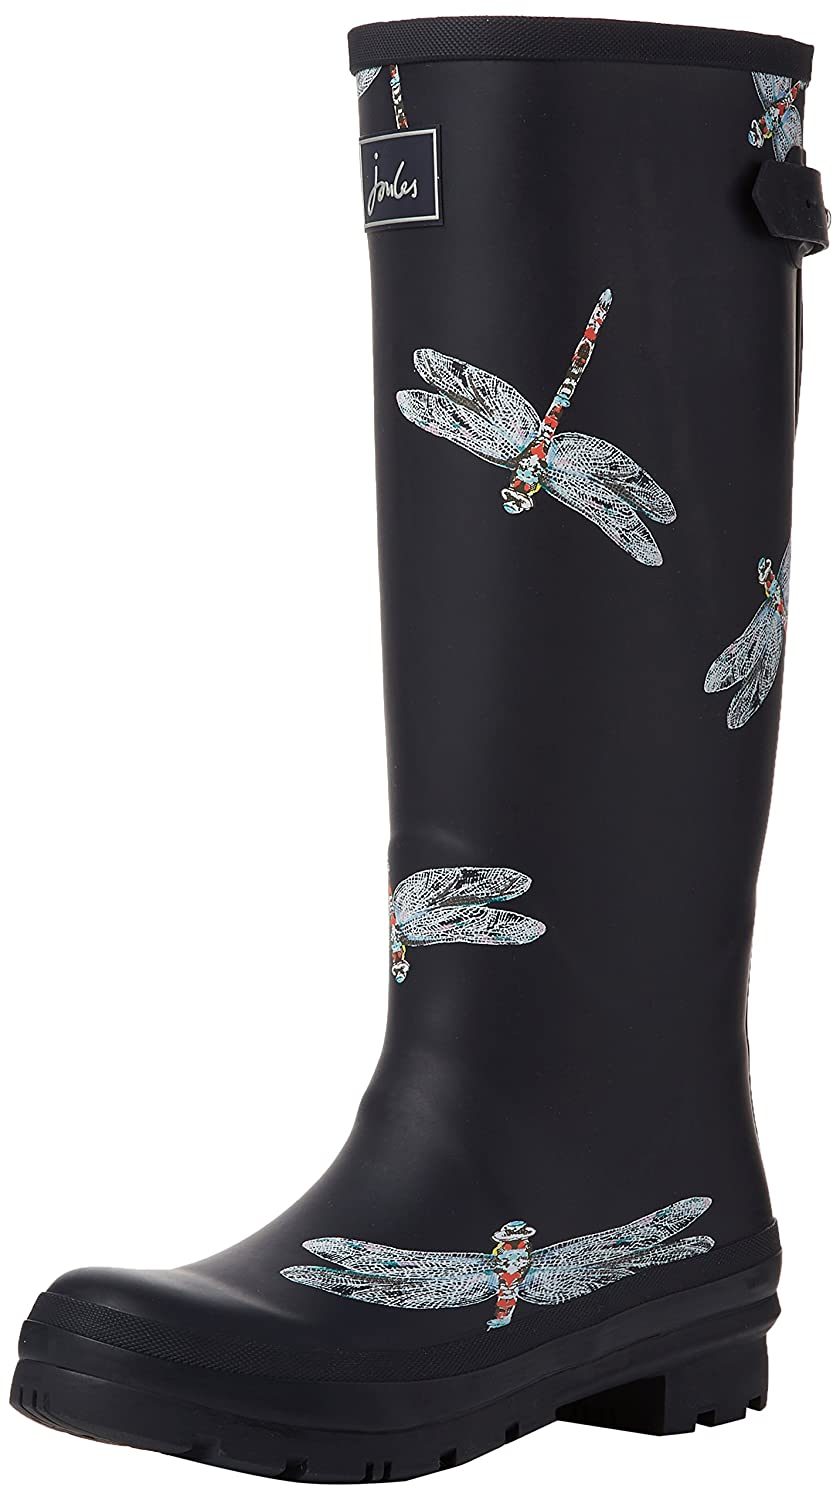 Joules Women's Wellyprint Rain Boot B073XHYXG3 9 B(M) US|Navy Dragonfly